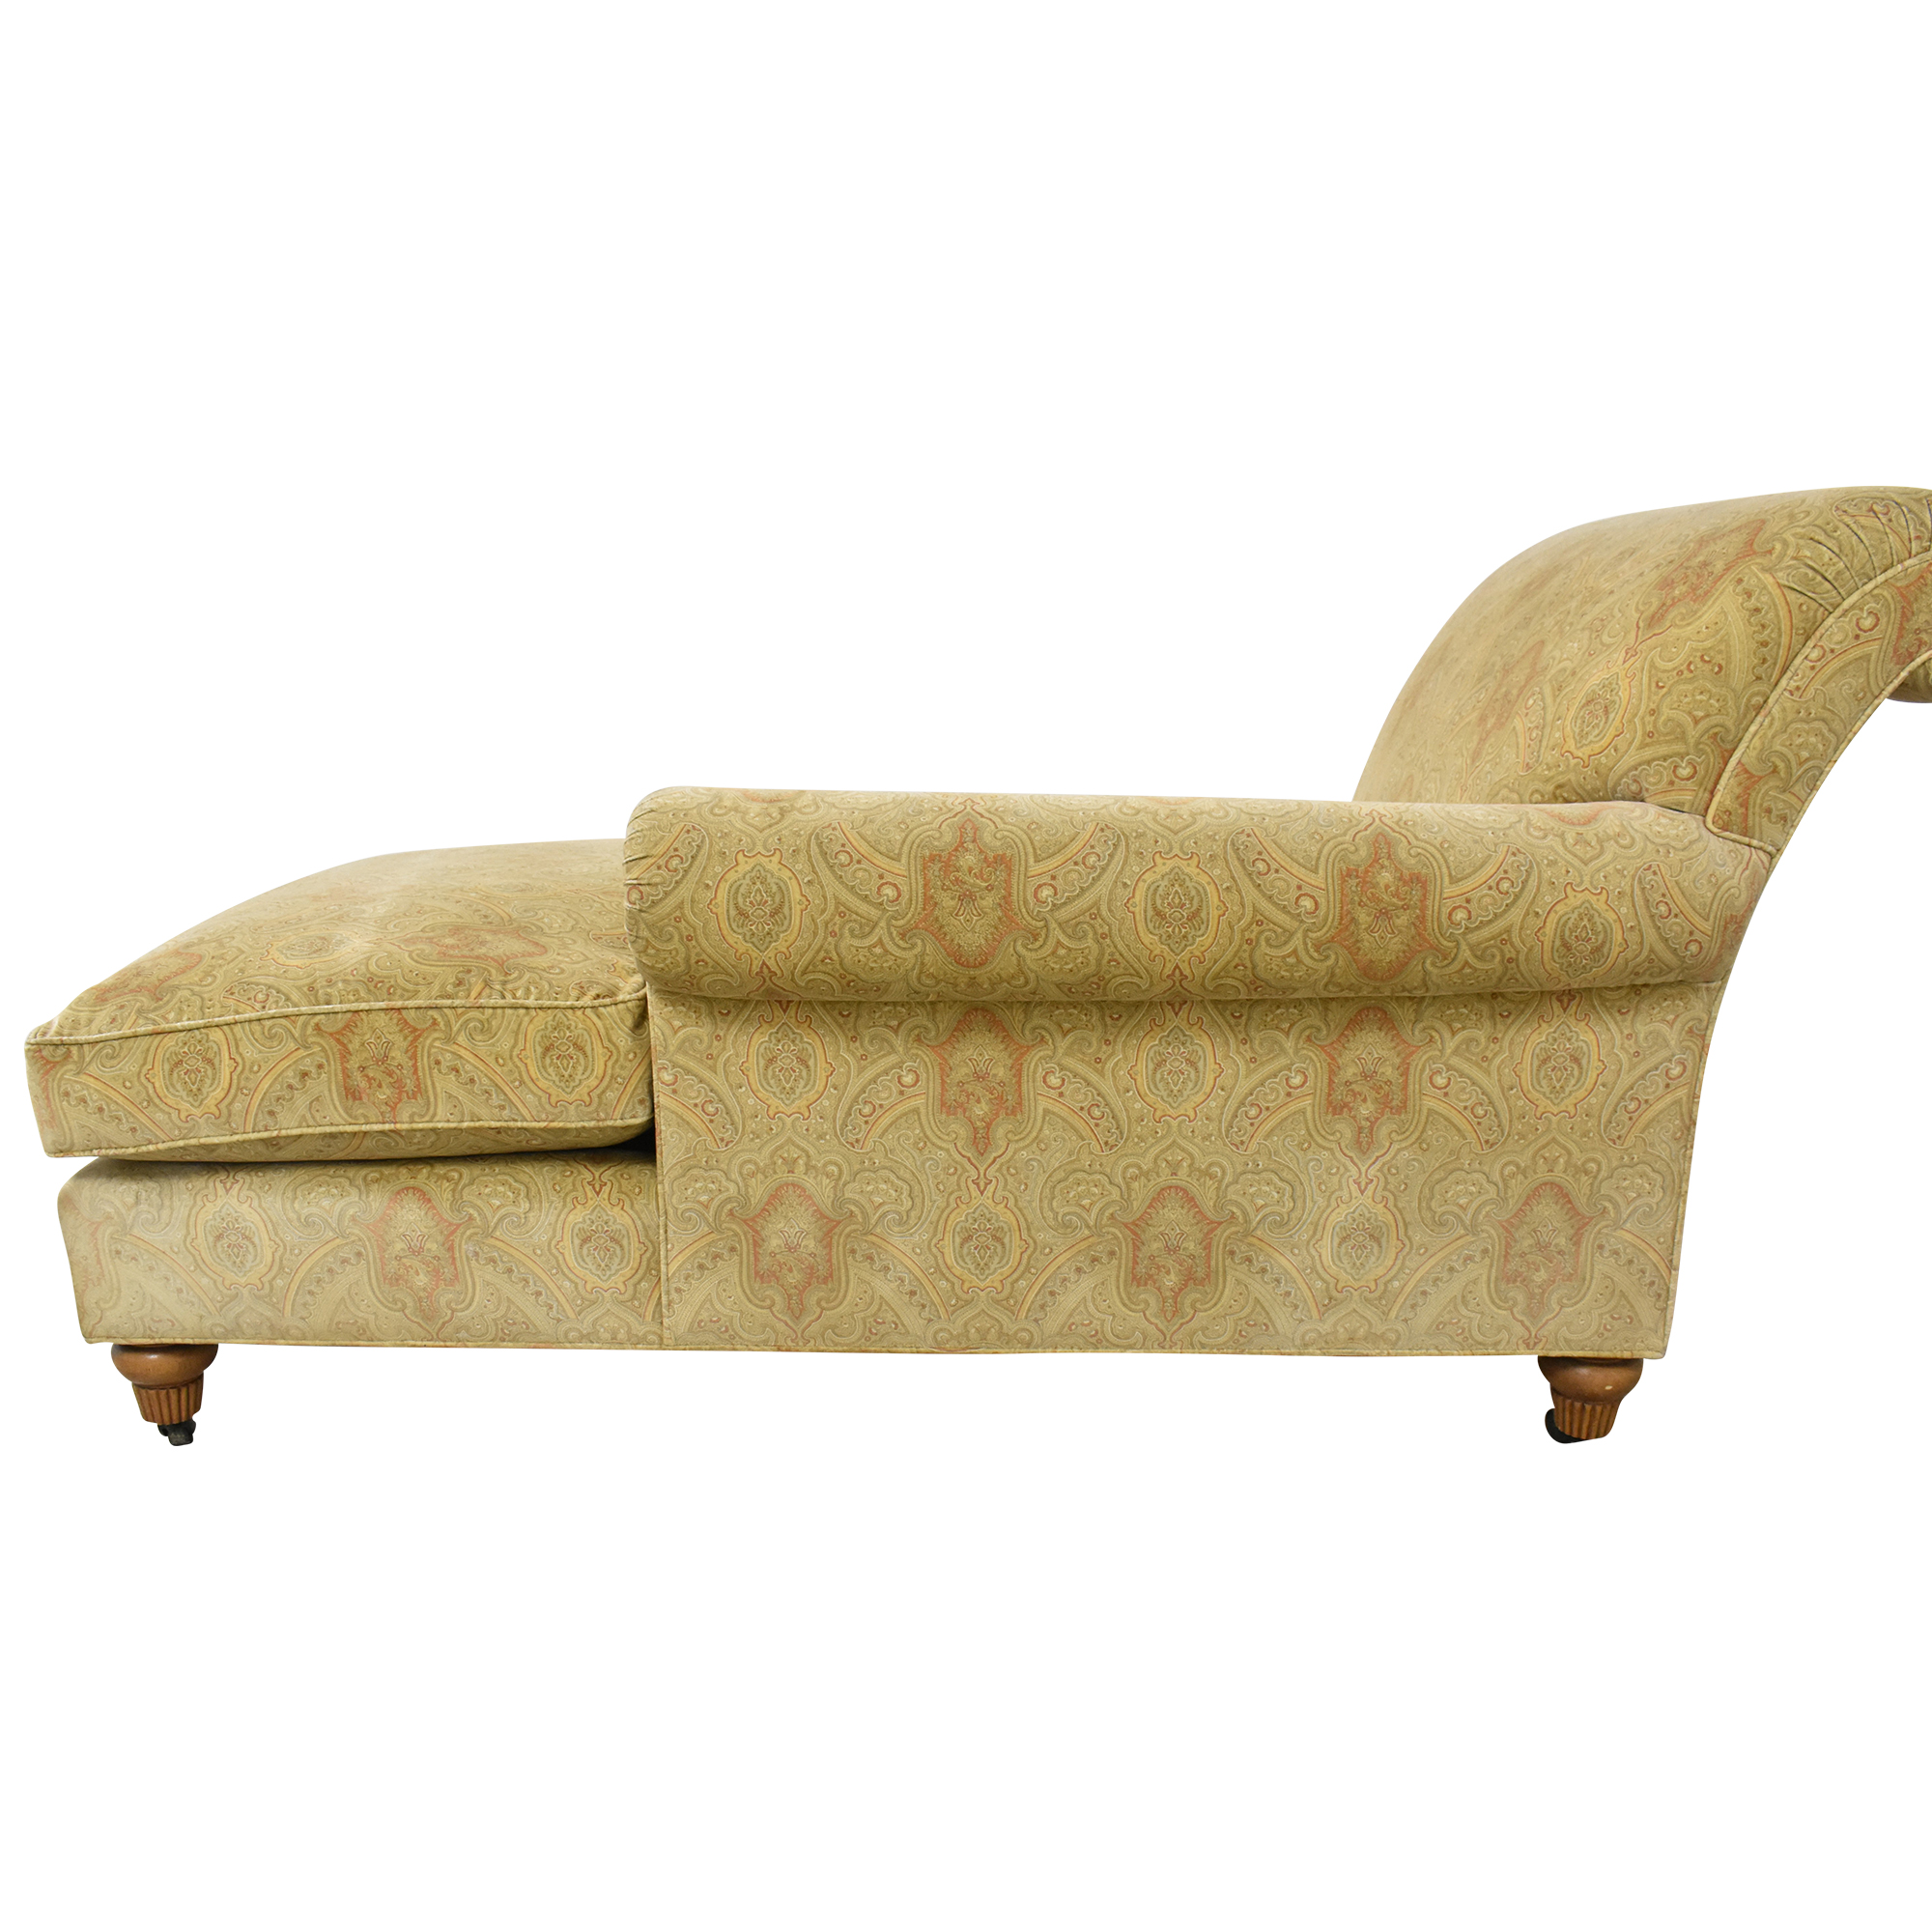 Custom Patterned Chaise second hand